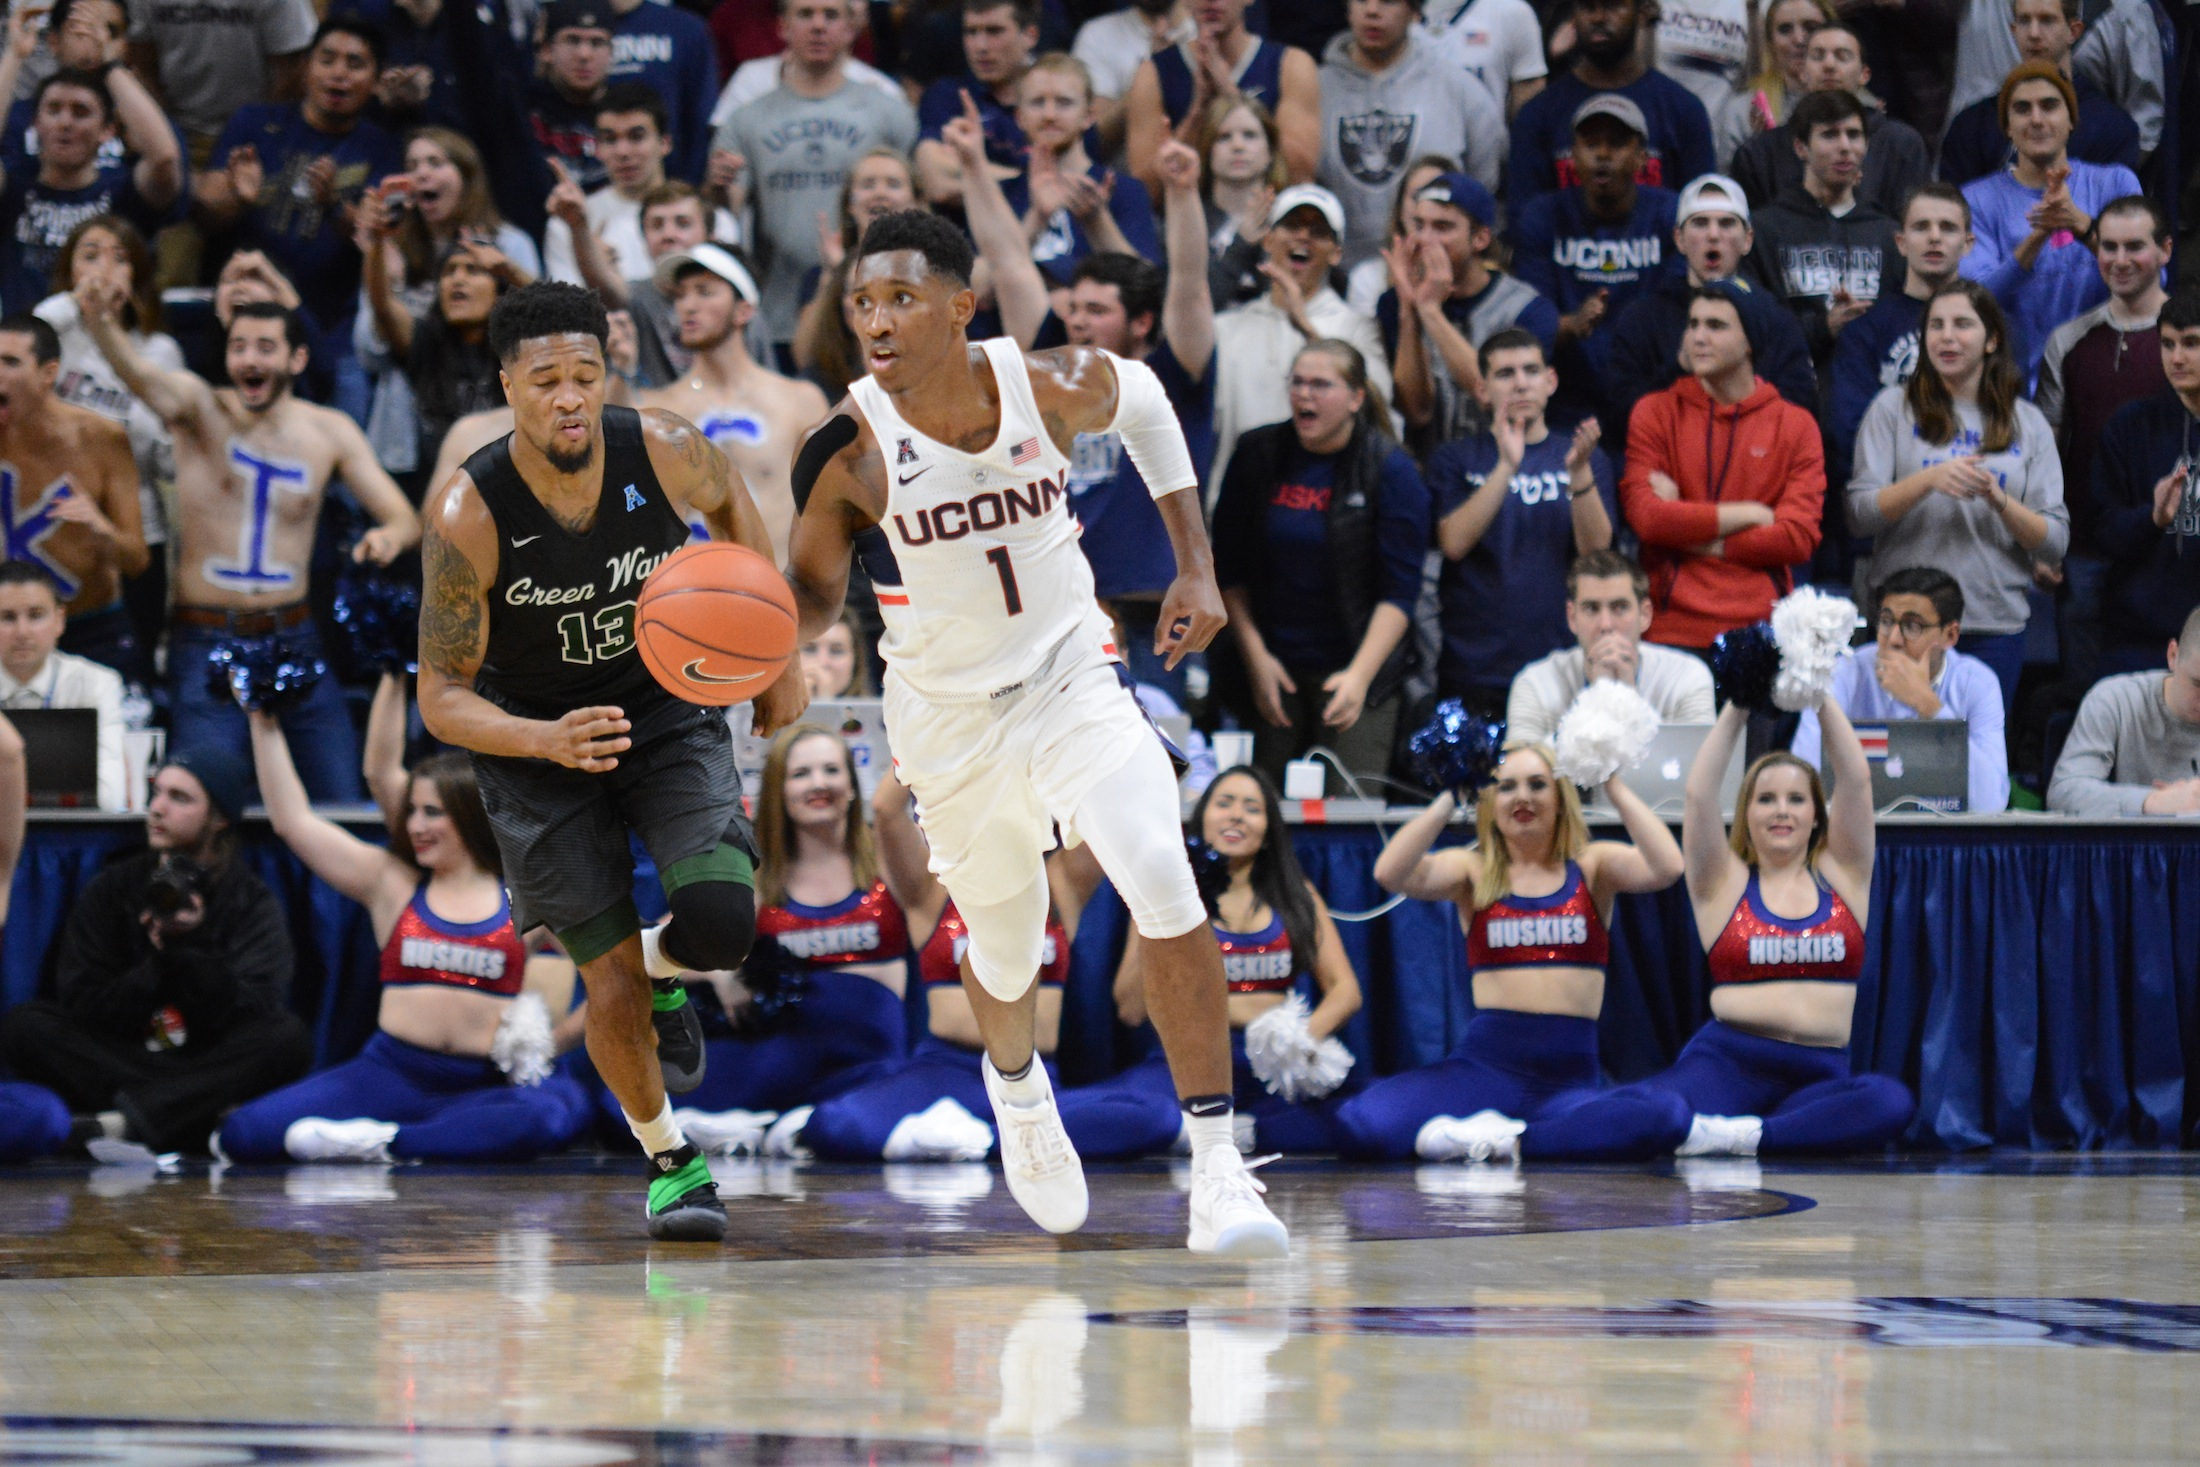 Christian Vital dribbles up the court in UConn's game against Tulane on January 28th, 2017. (Jason Jiang/The Daily Campus)